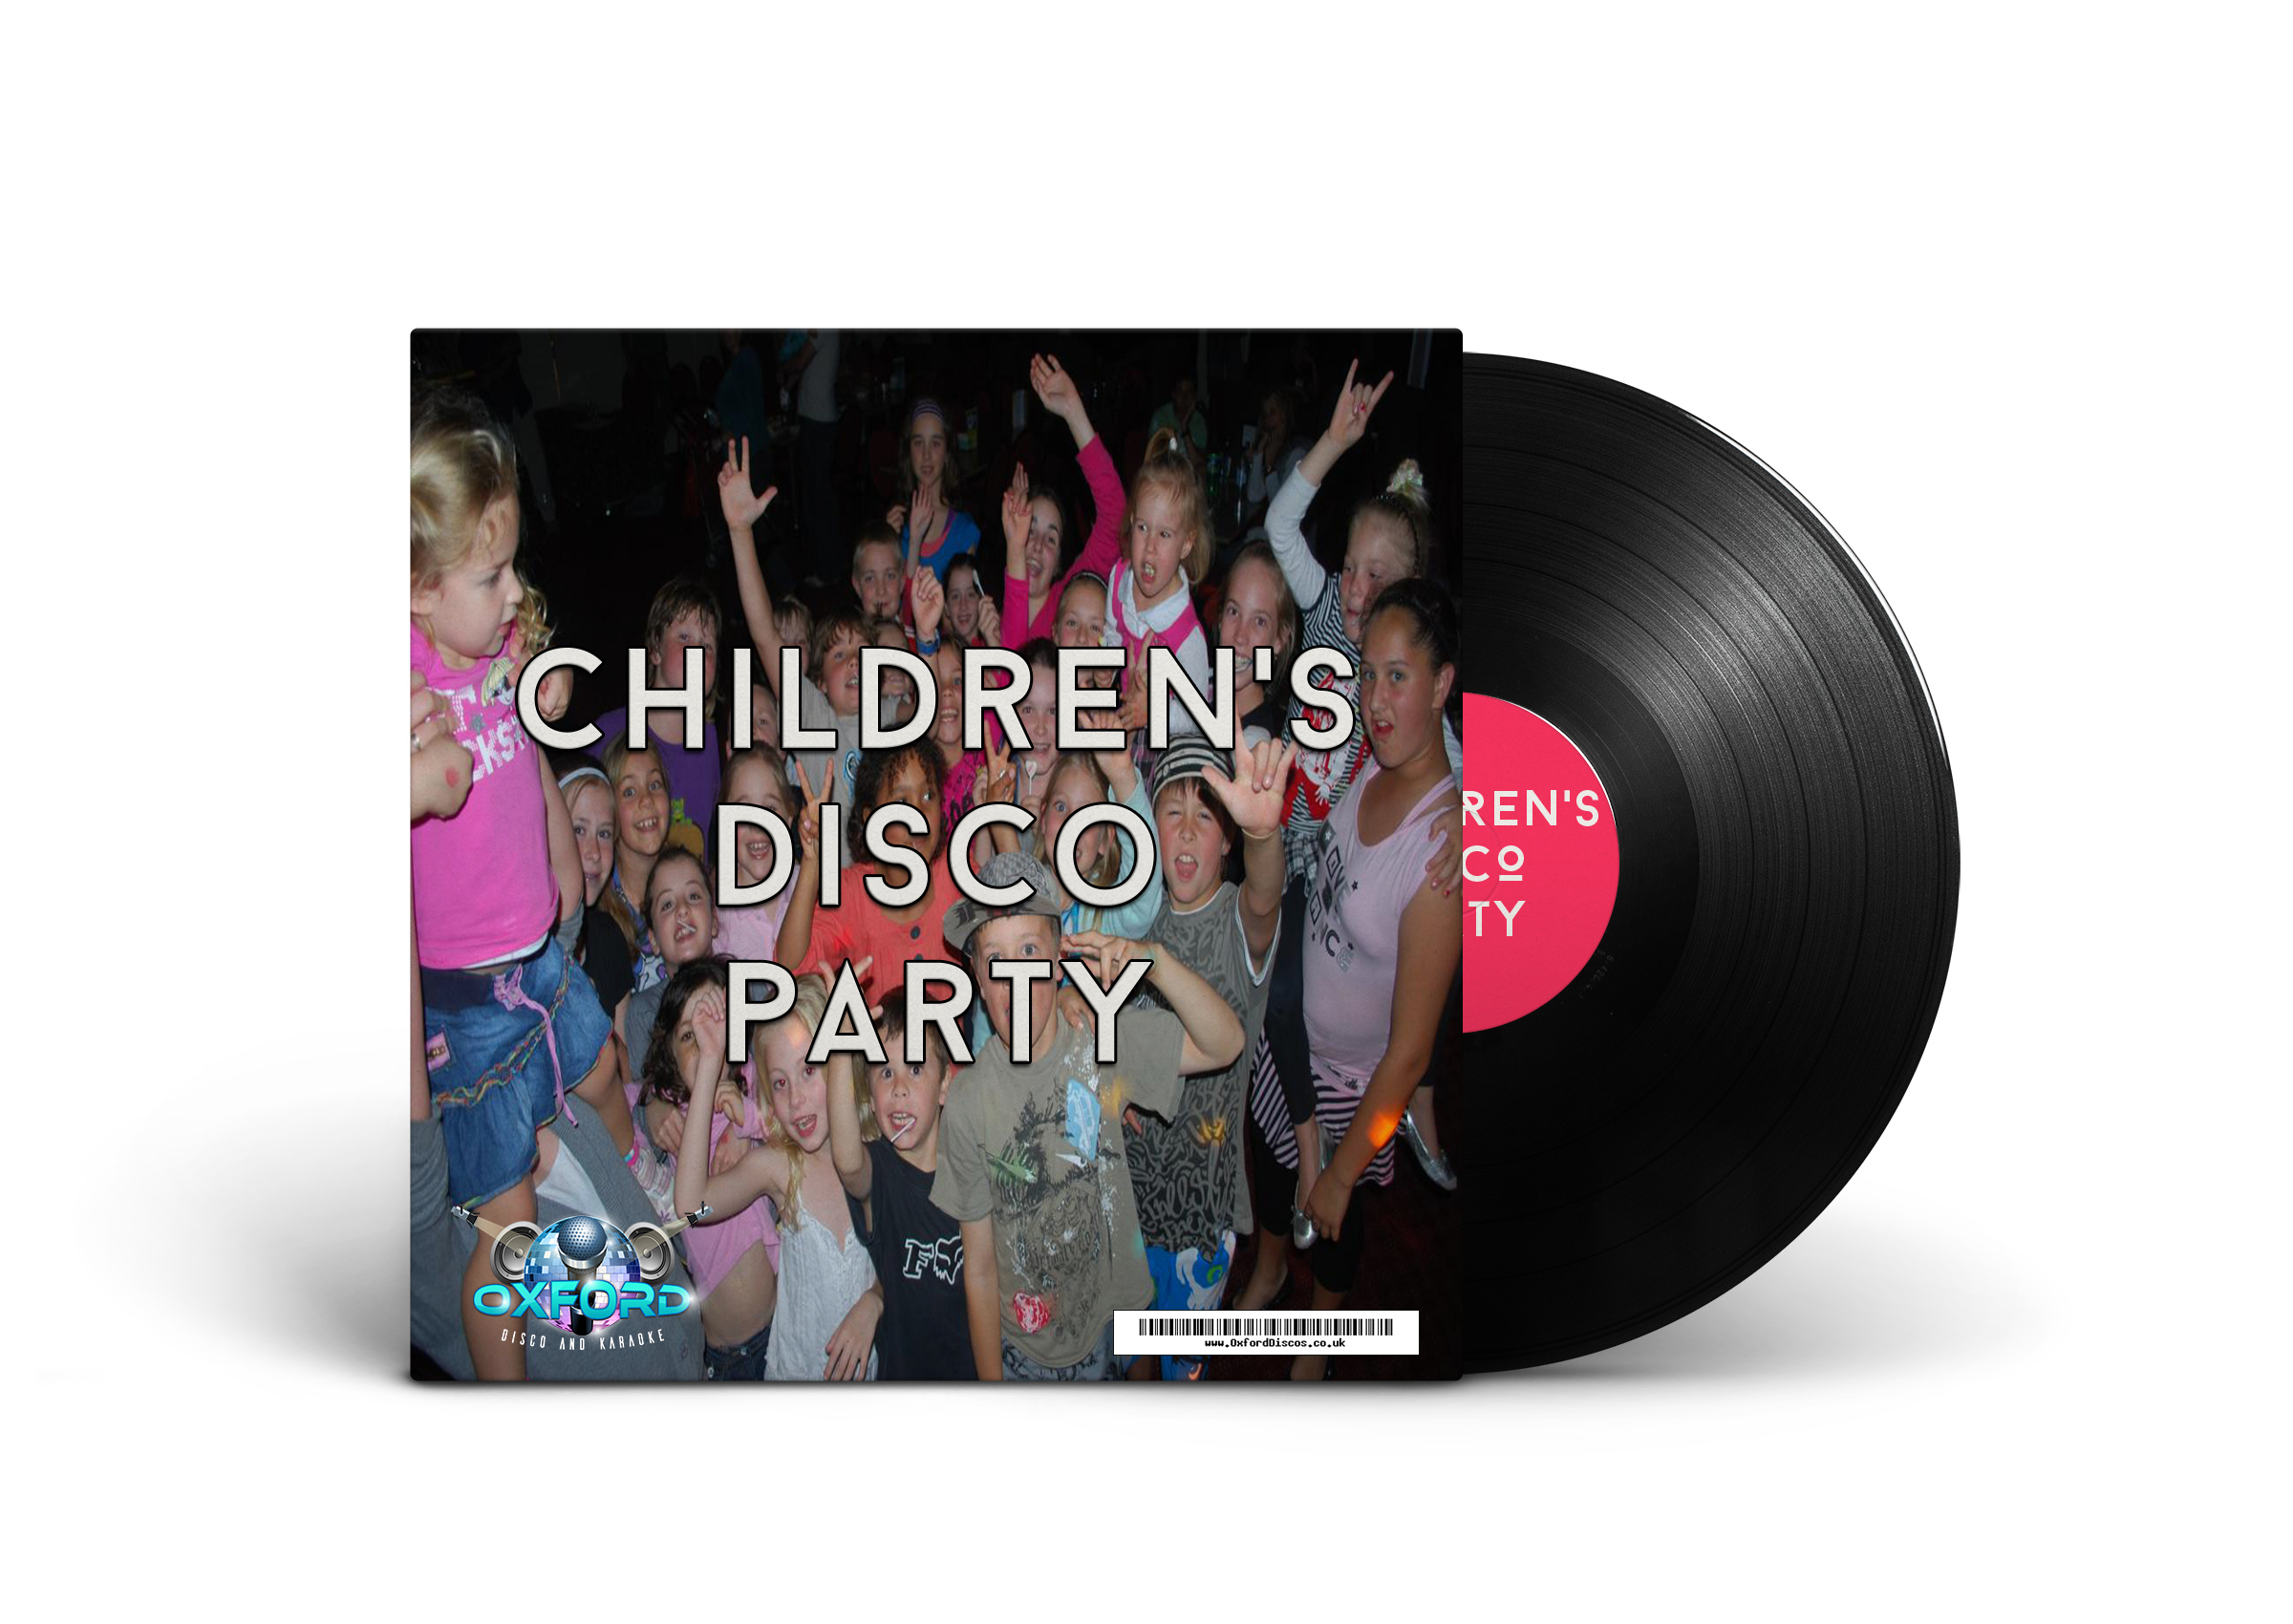 16 Children's Disco Party